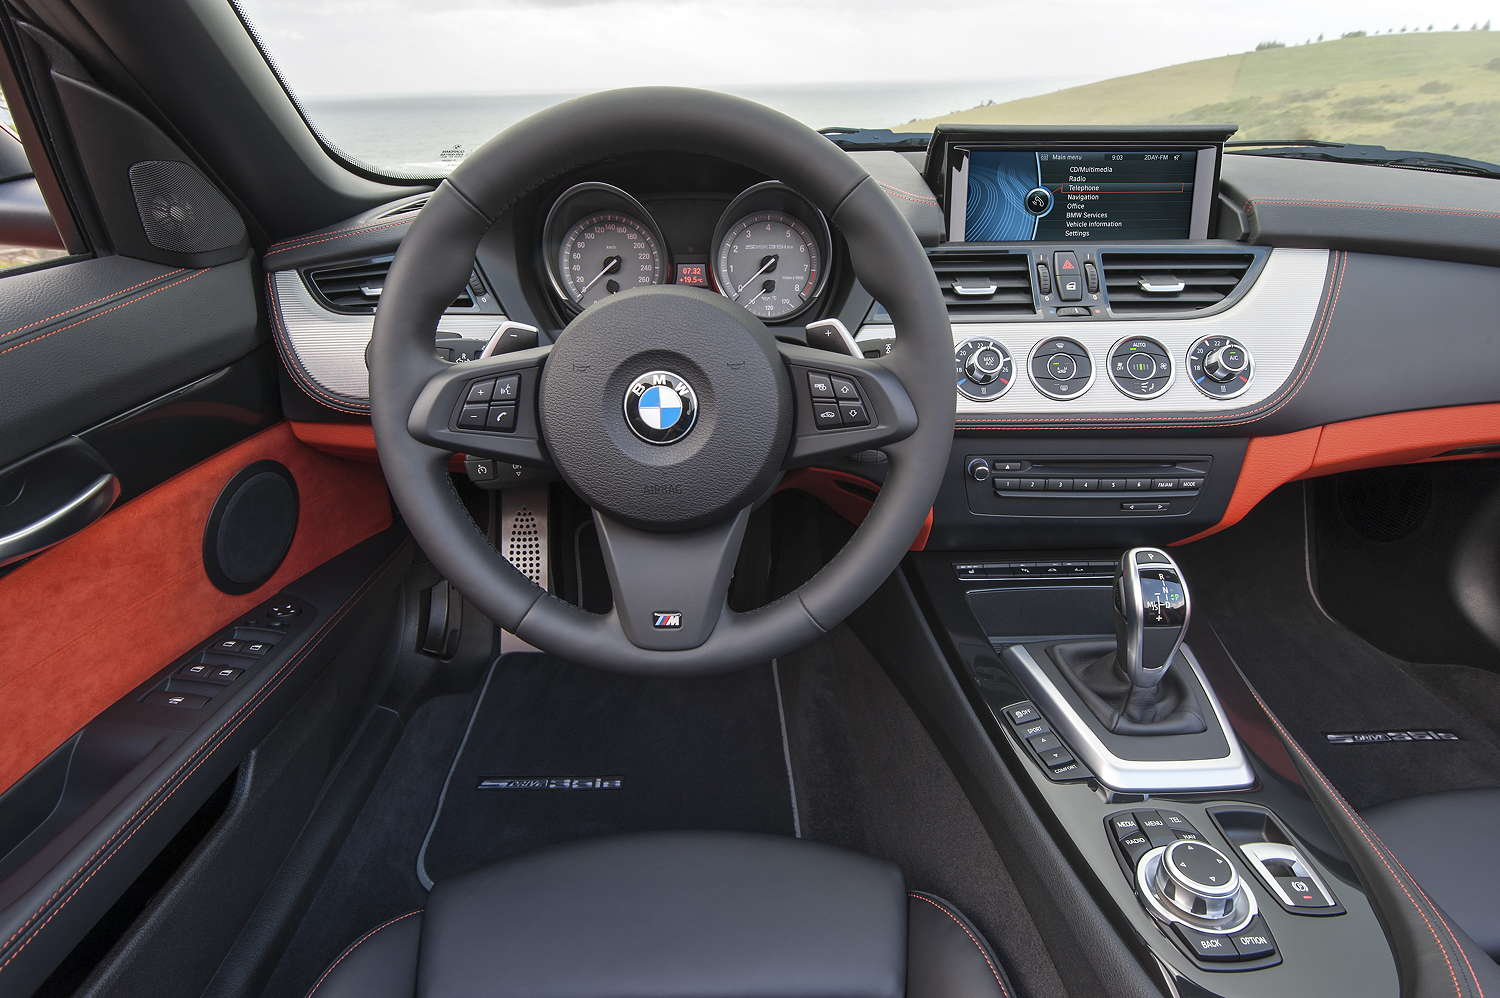 E89 m lenkrad in e90 e90 e91 e92 e93 interieur bmw for Interieur z4 e85